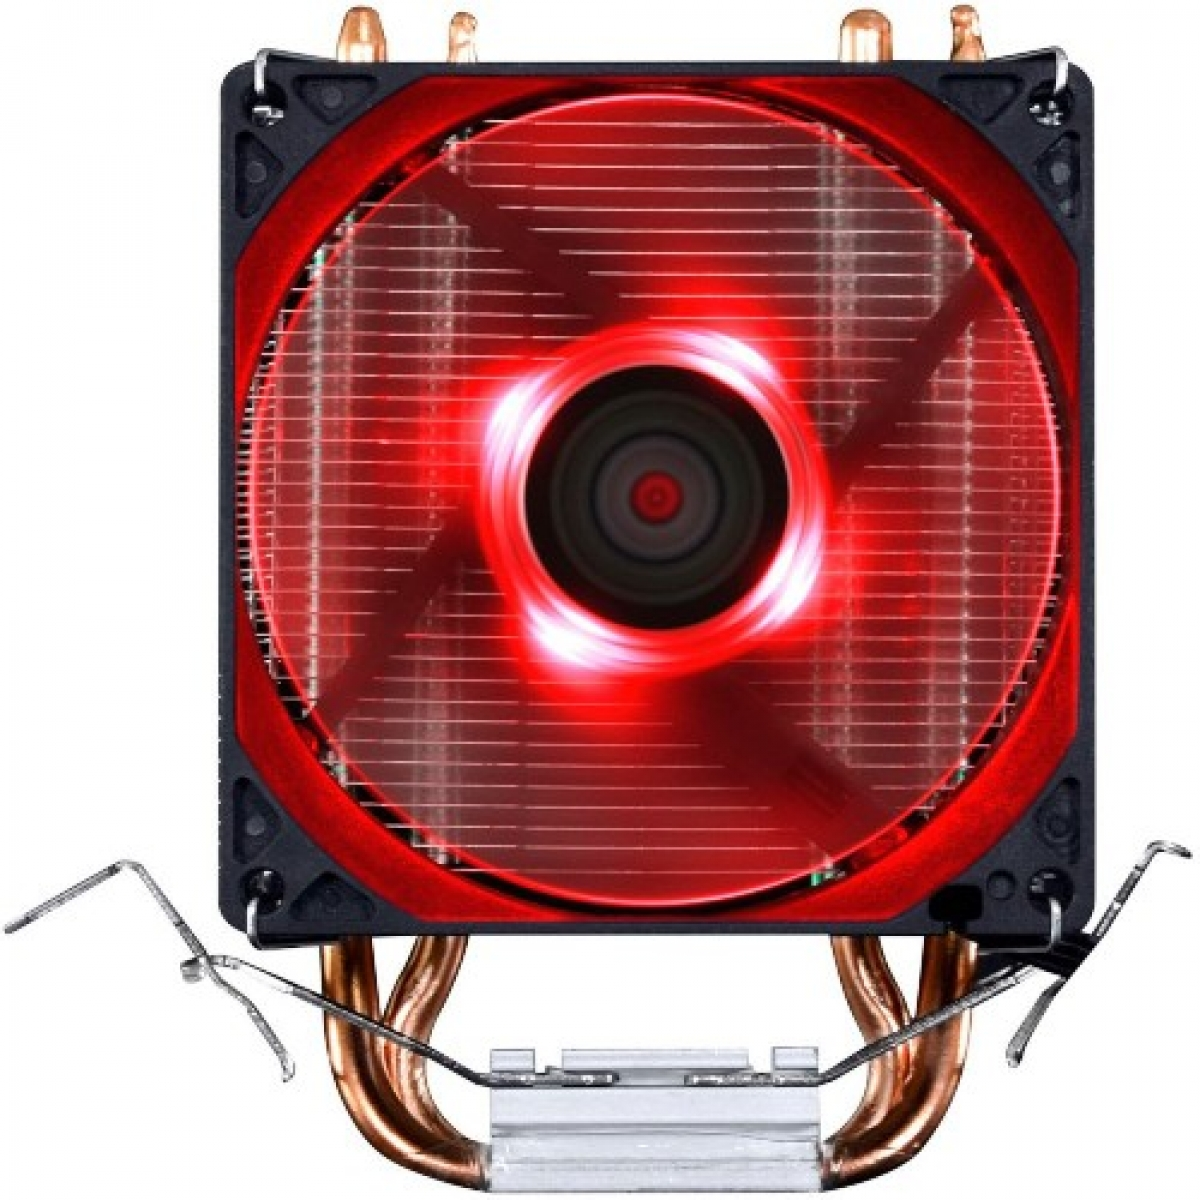 Cooler para Processador PCyes Zero KZ2, LED Red 92mm, Intel-AMD, ACZK292LDV